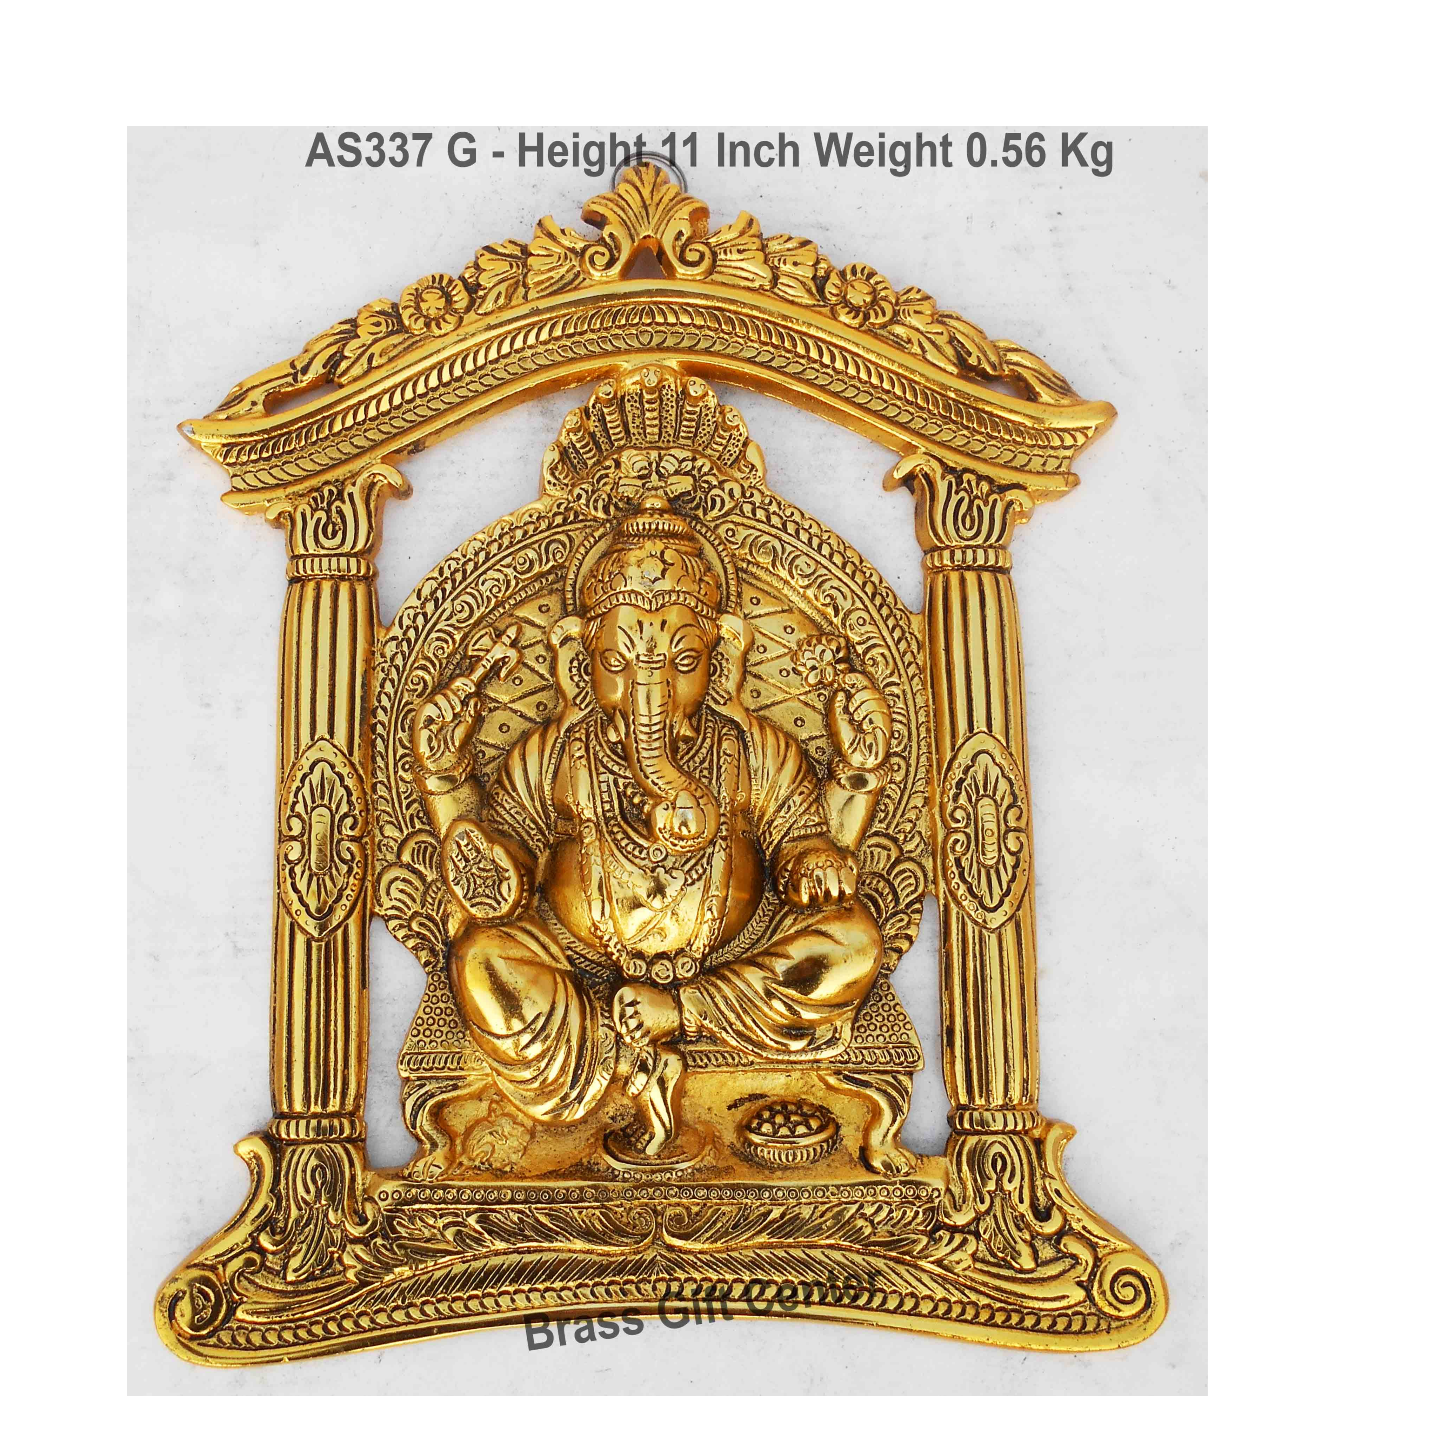 Frame Ganesh Statue Murti Idol In Gold Antique Finish - 9x11 Inch (AS337 G)